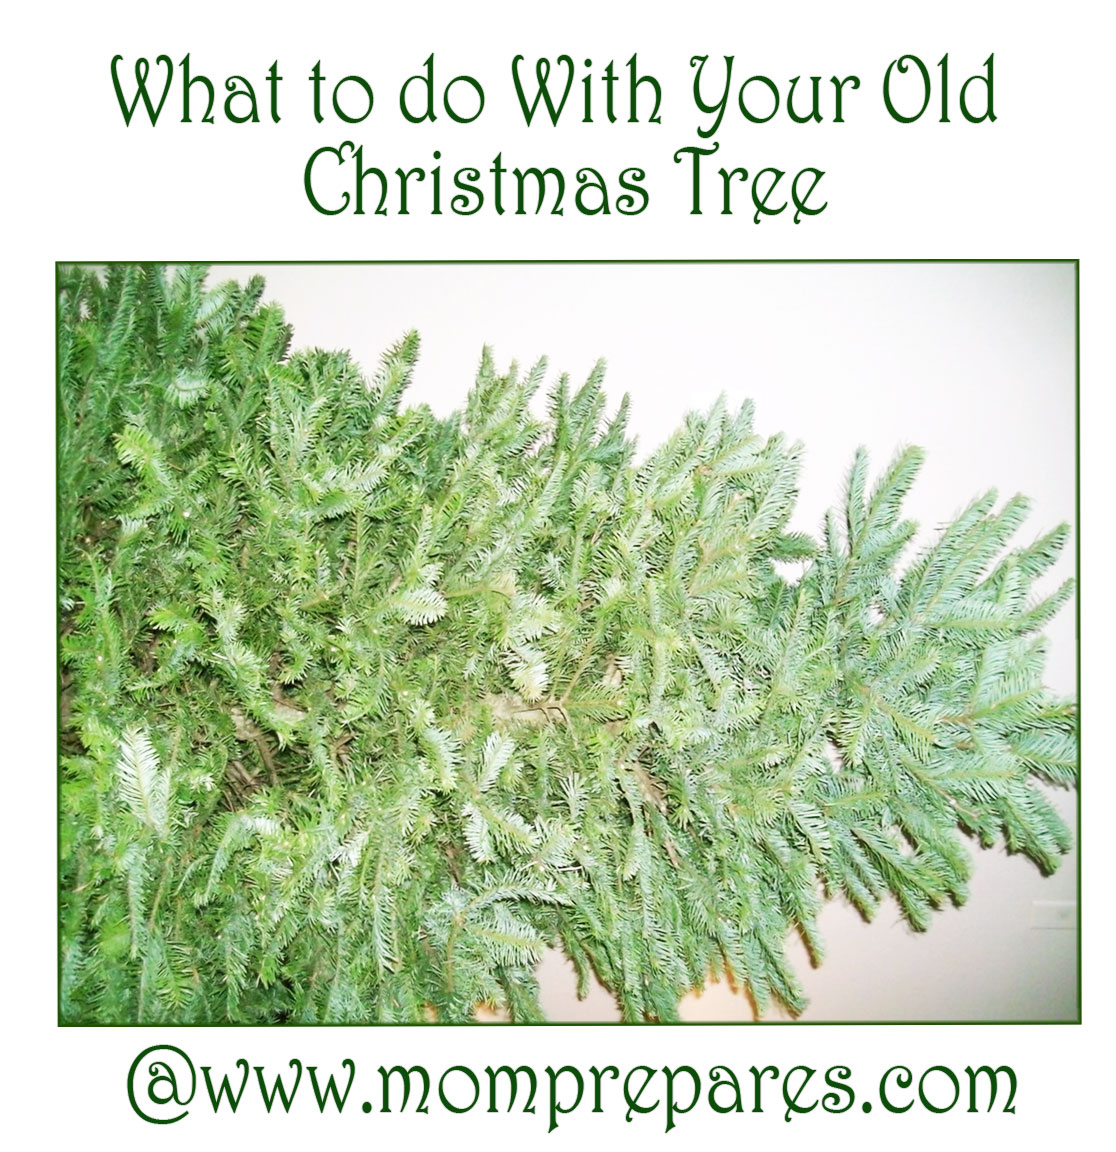 Don't let your Christmas tree go to waste after Christmas this year. Photo by Brenda Priddy